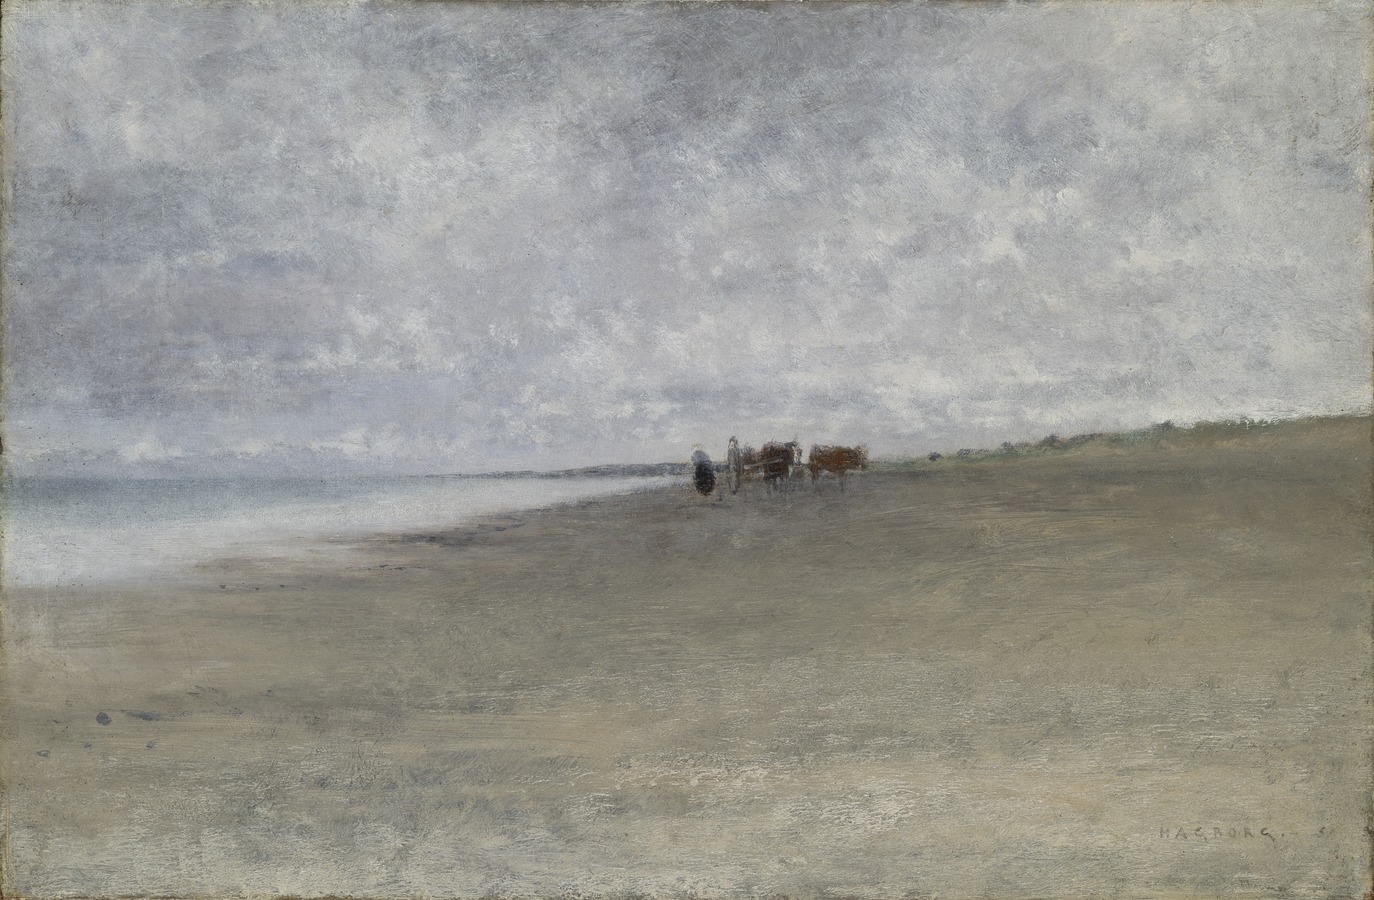 August Hagborg Hazy Weather by the Sea